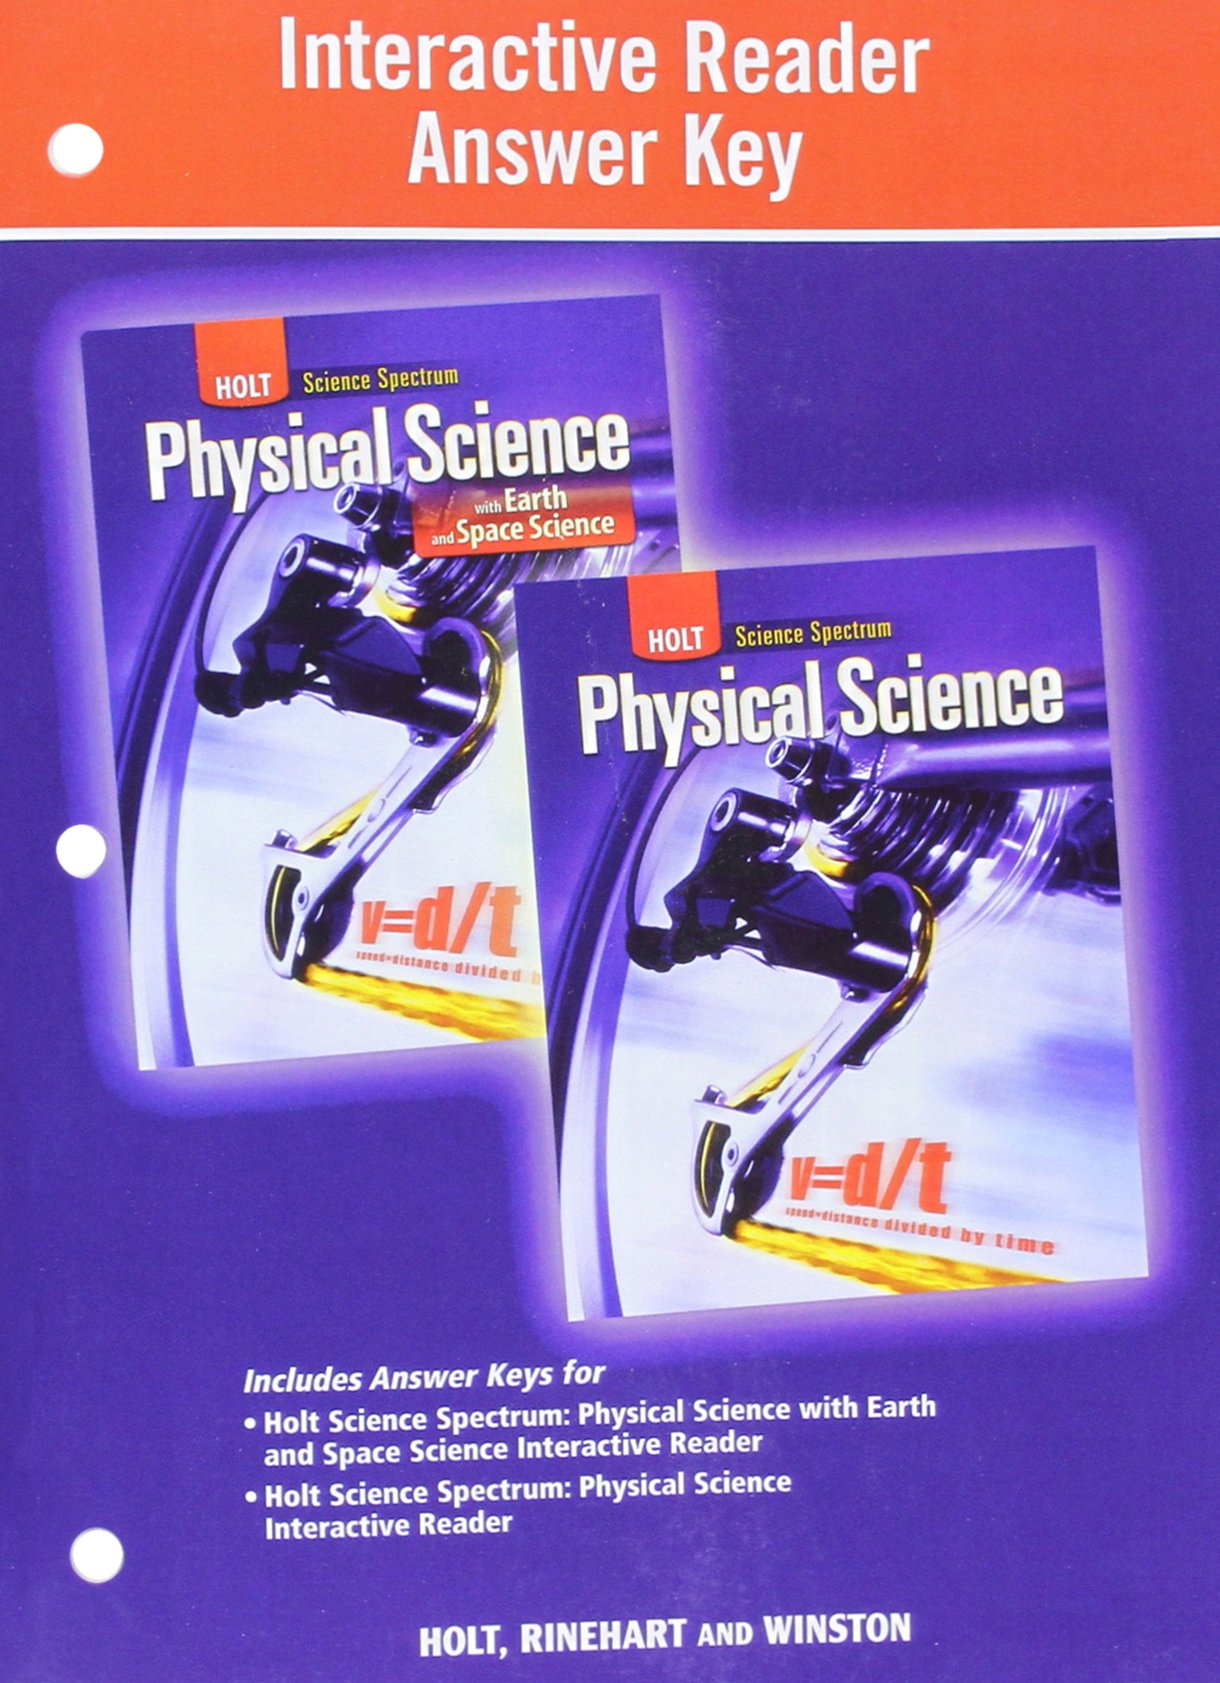 Holt Science Spectrum: Physical Science with Earth and Space Science:  Interactive Reader Answer Key: 9780030939273: Amazon.com: Books